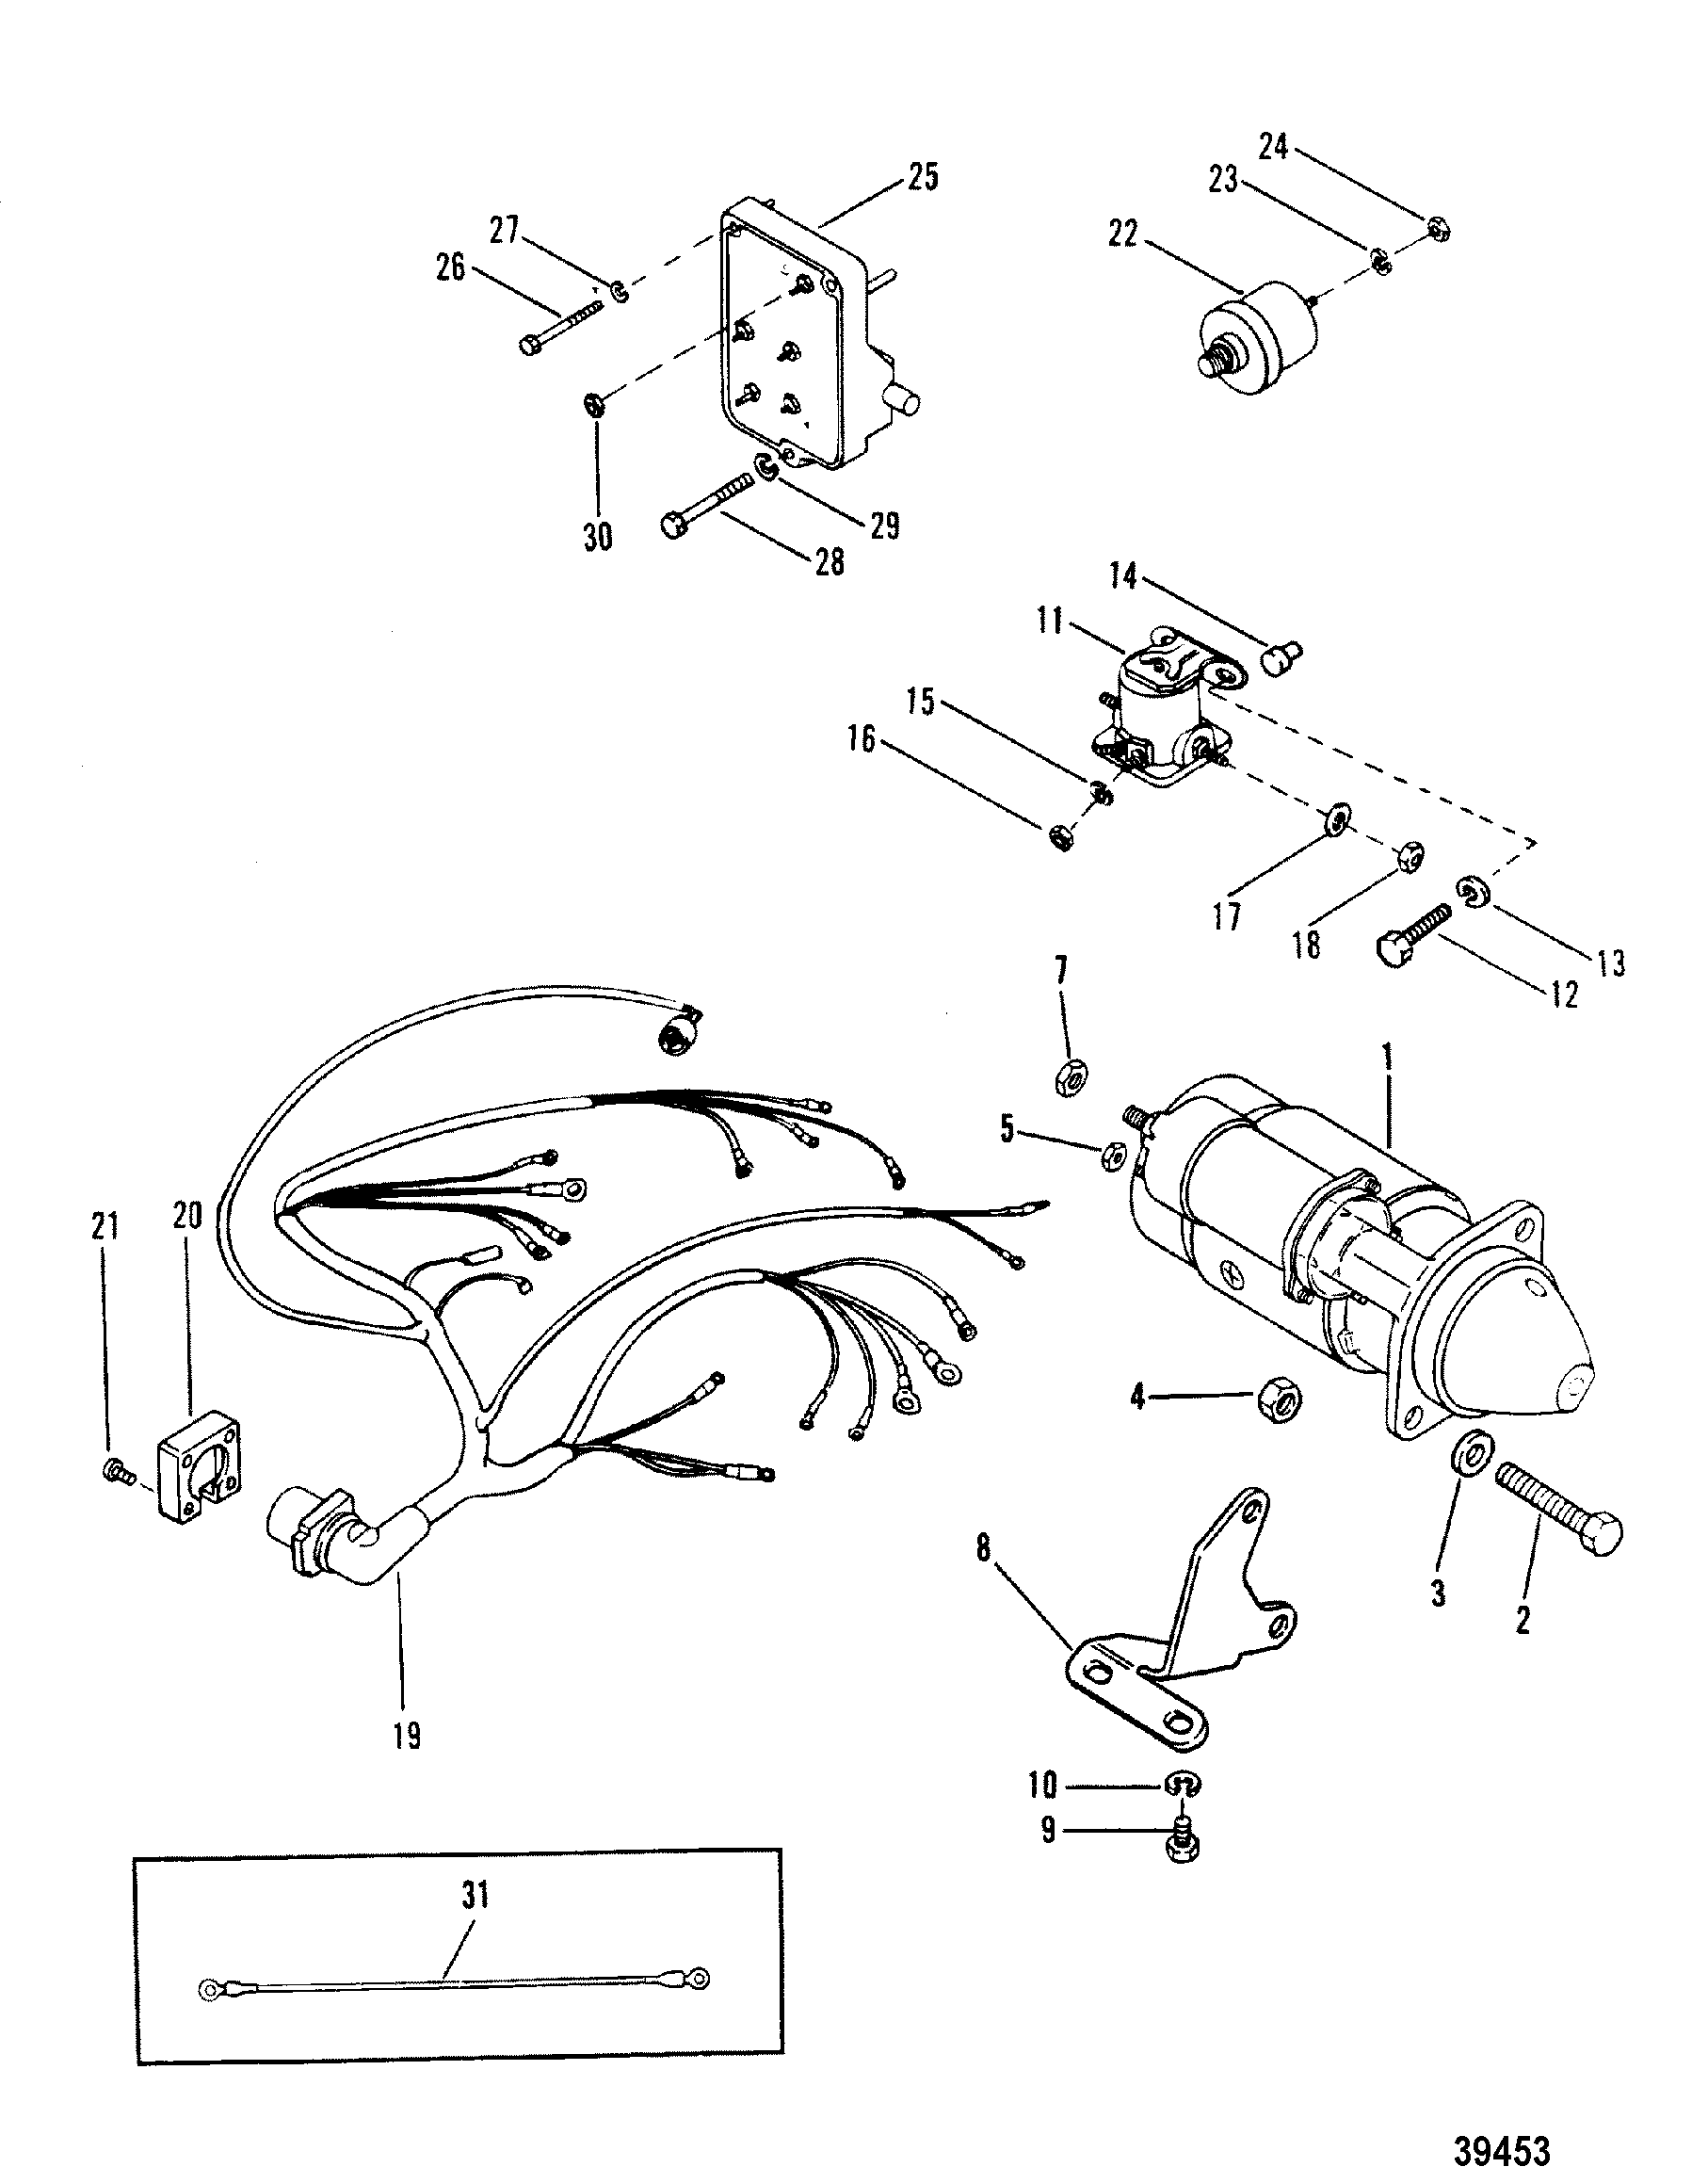 mercruiser 4 3 alternator wiring diagram 2 guitar 5 way switch diagrams starter motor and harness for 165 hp